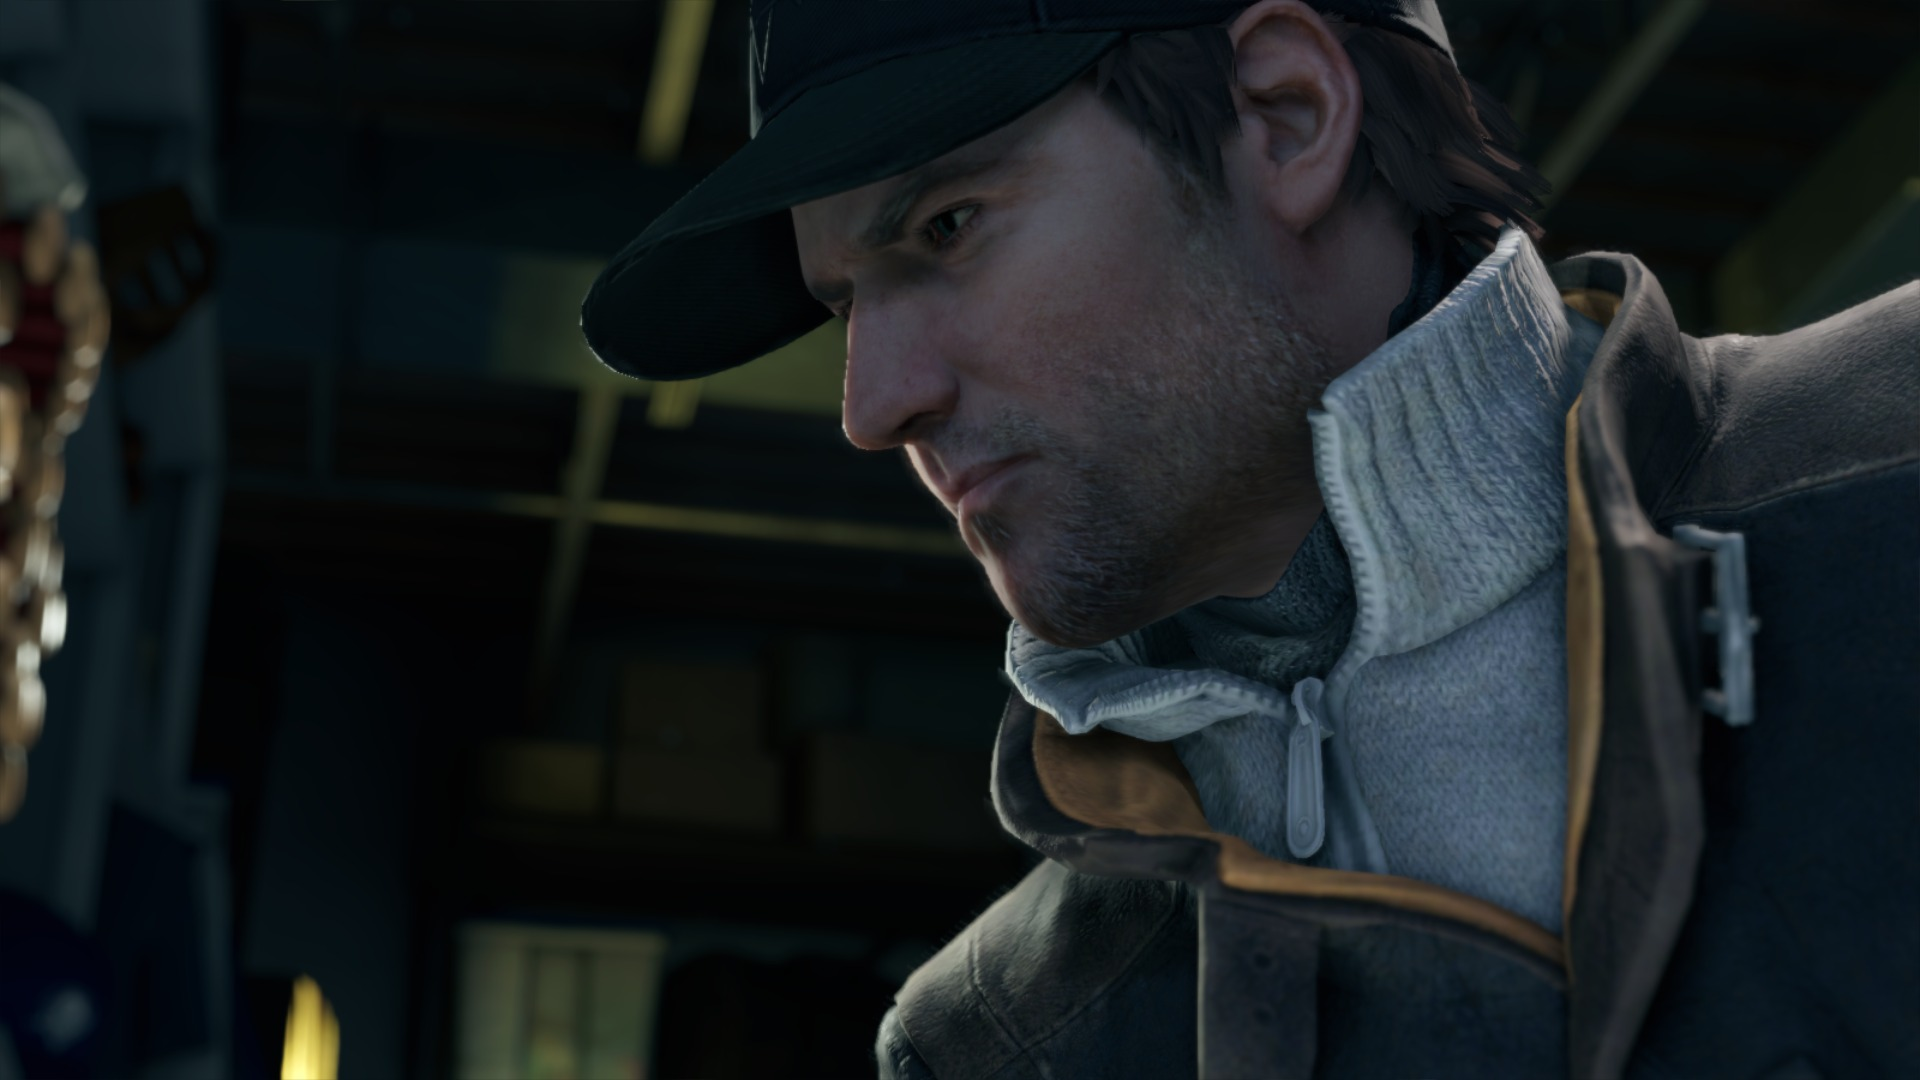 WATCH_DOGS™_20140527181158